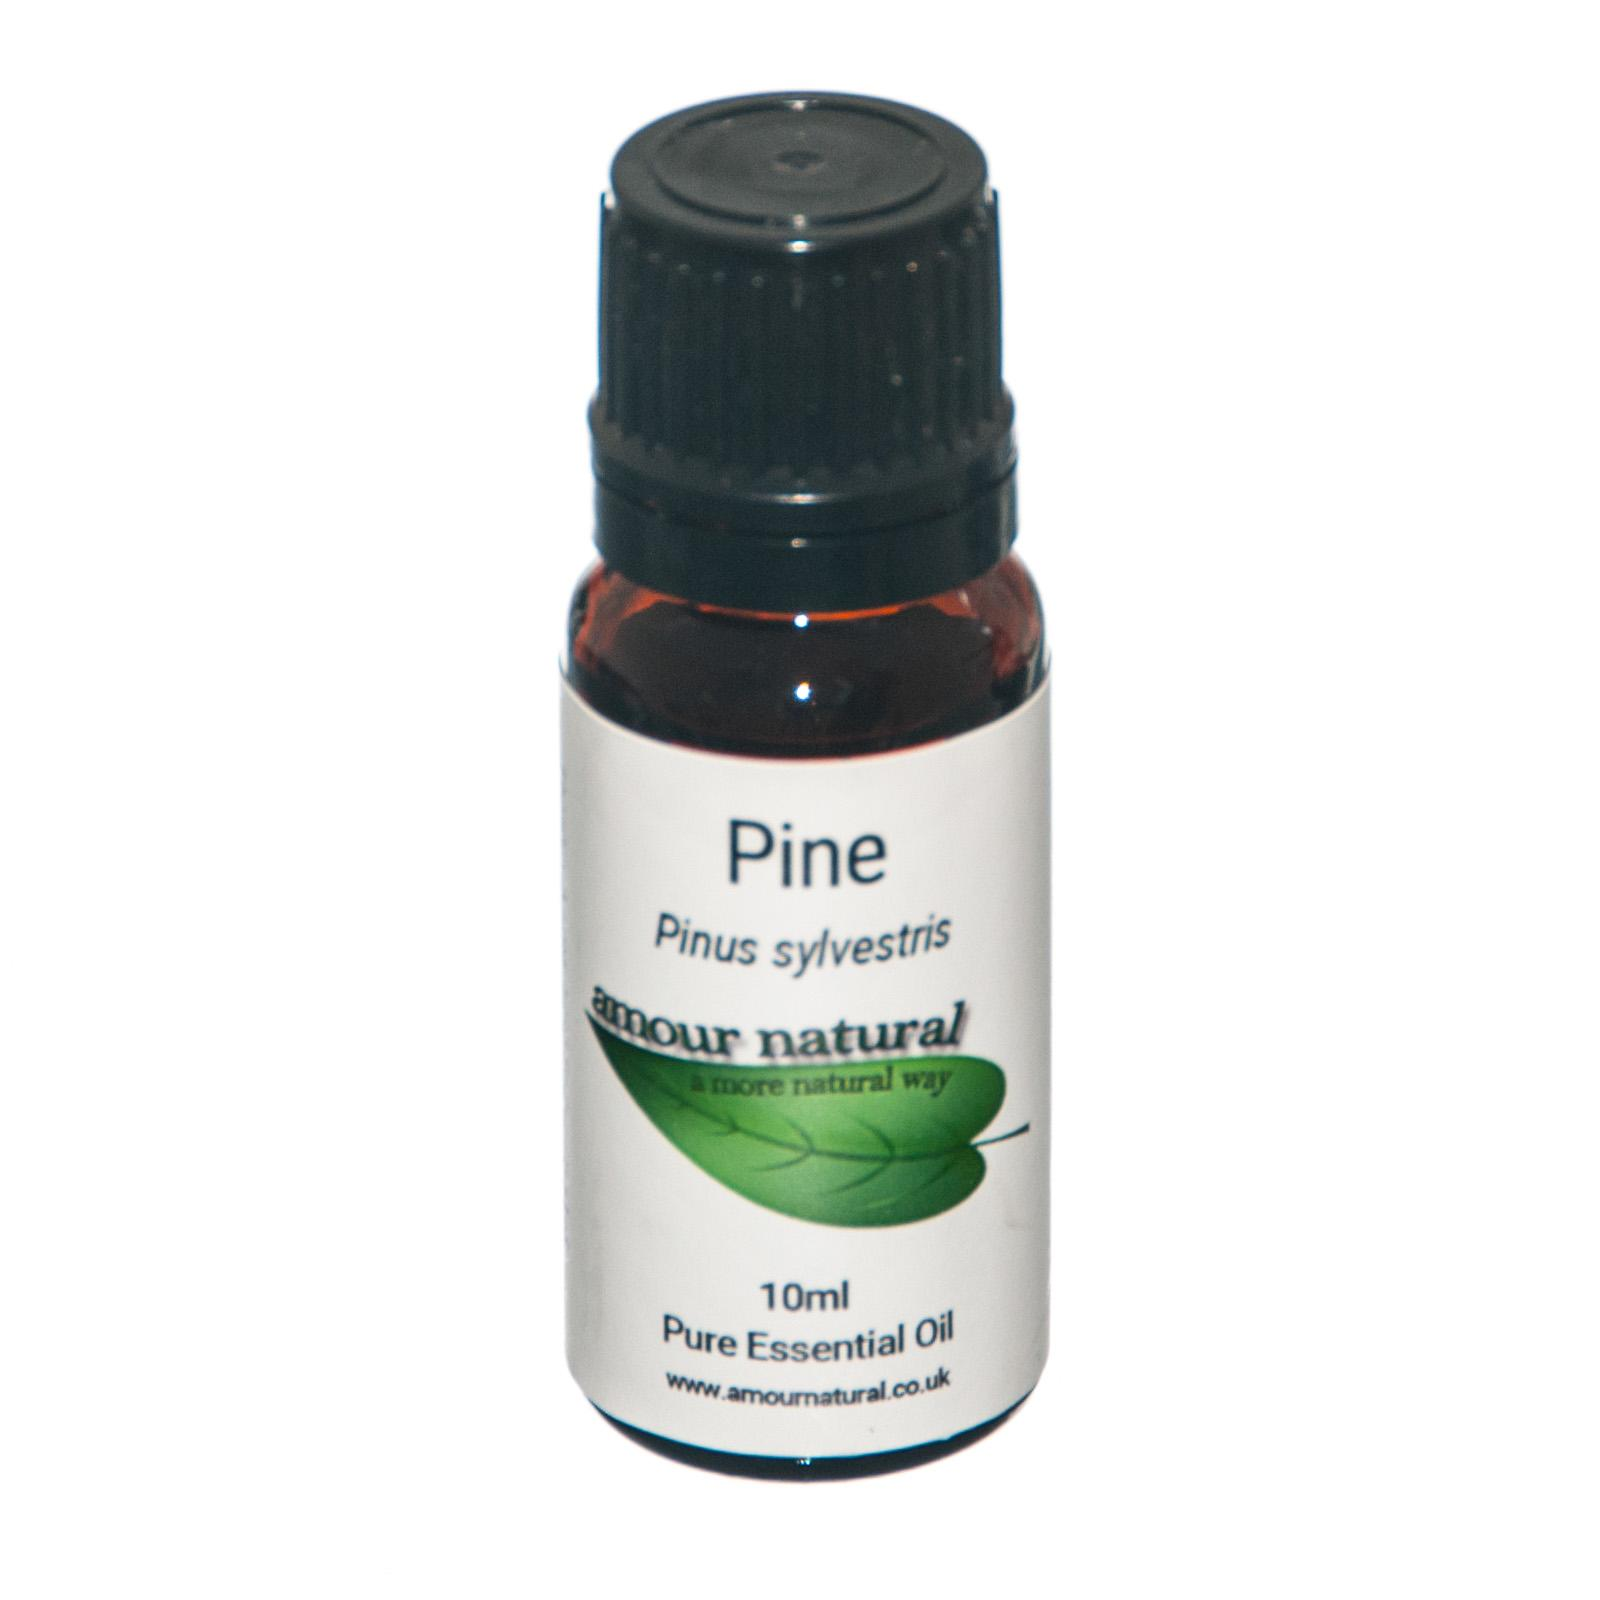 1 x 10 ml bottle of Pine Essential Oil